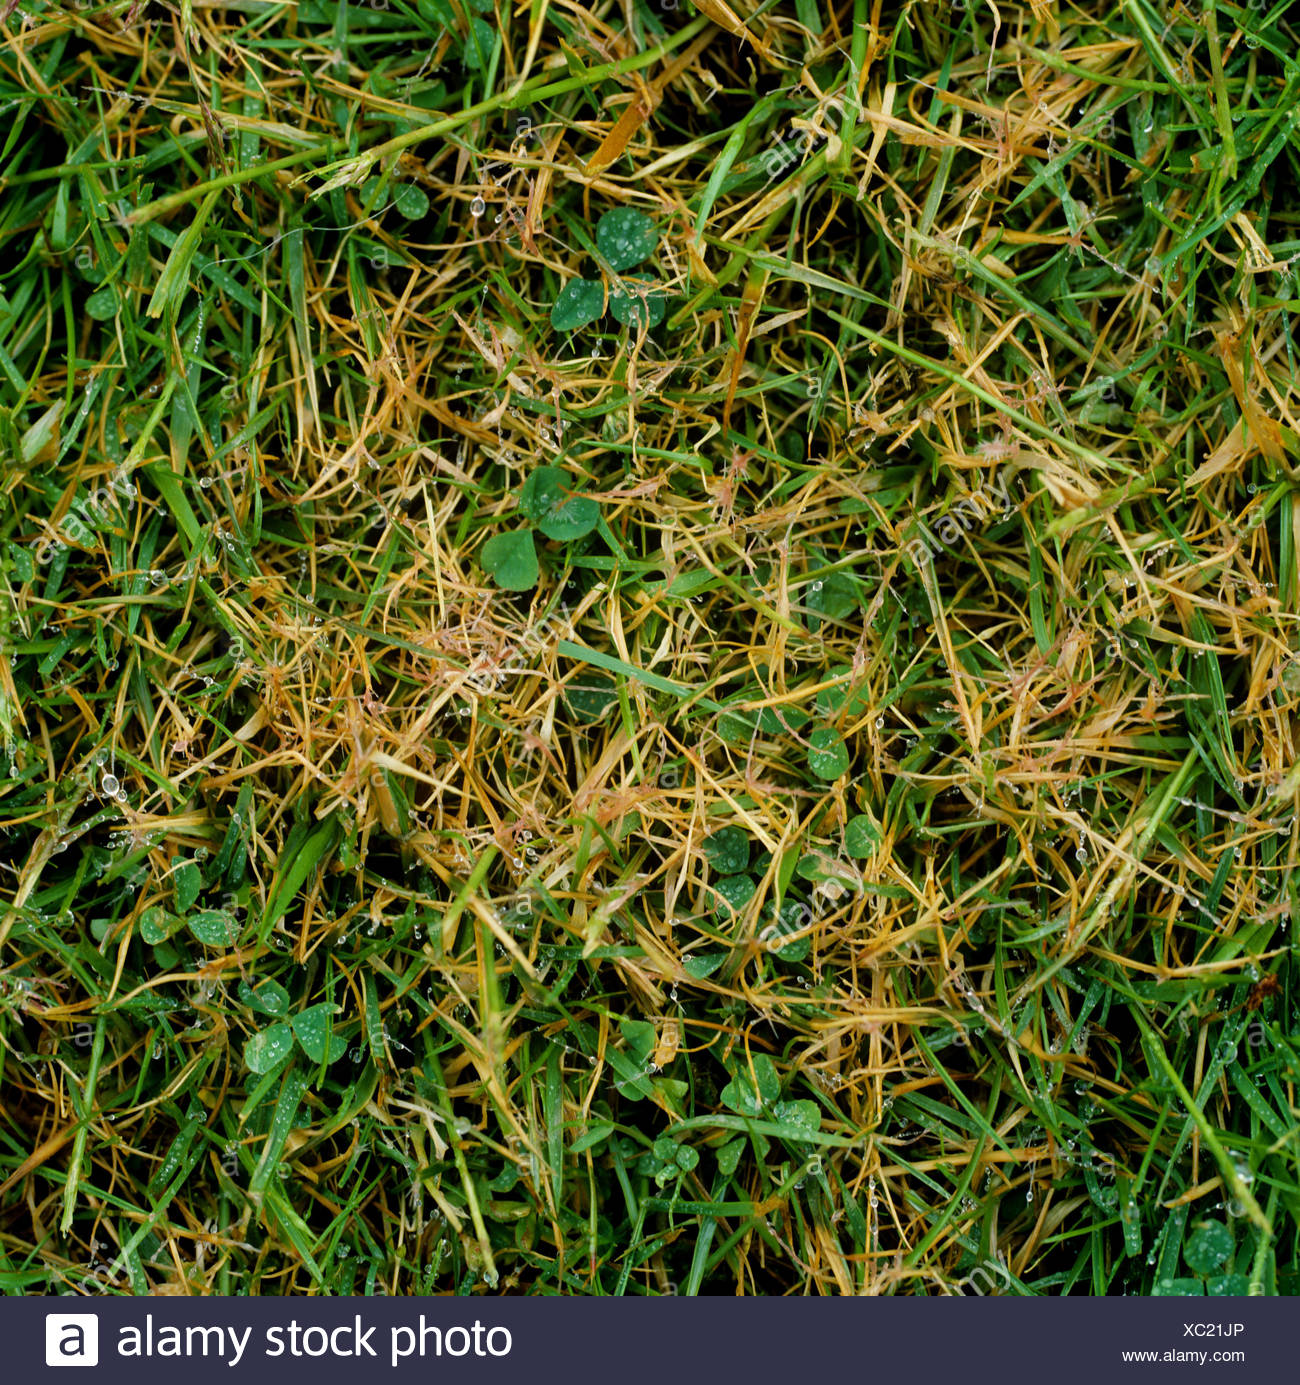 Turf grass patch with red thread Laetisaria fuciformis infection - Stock Image